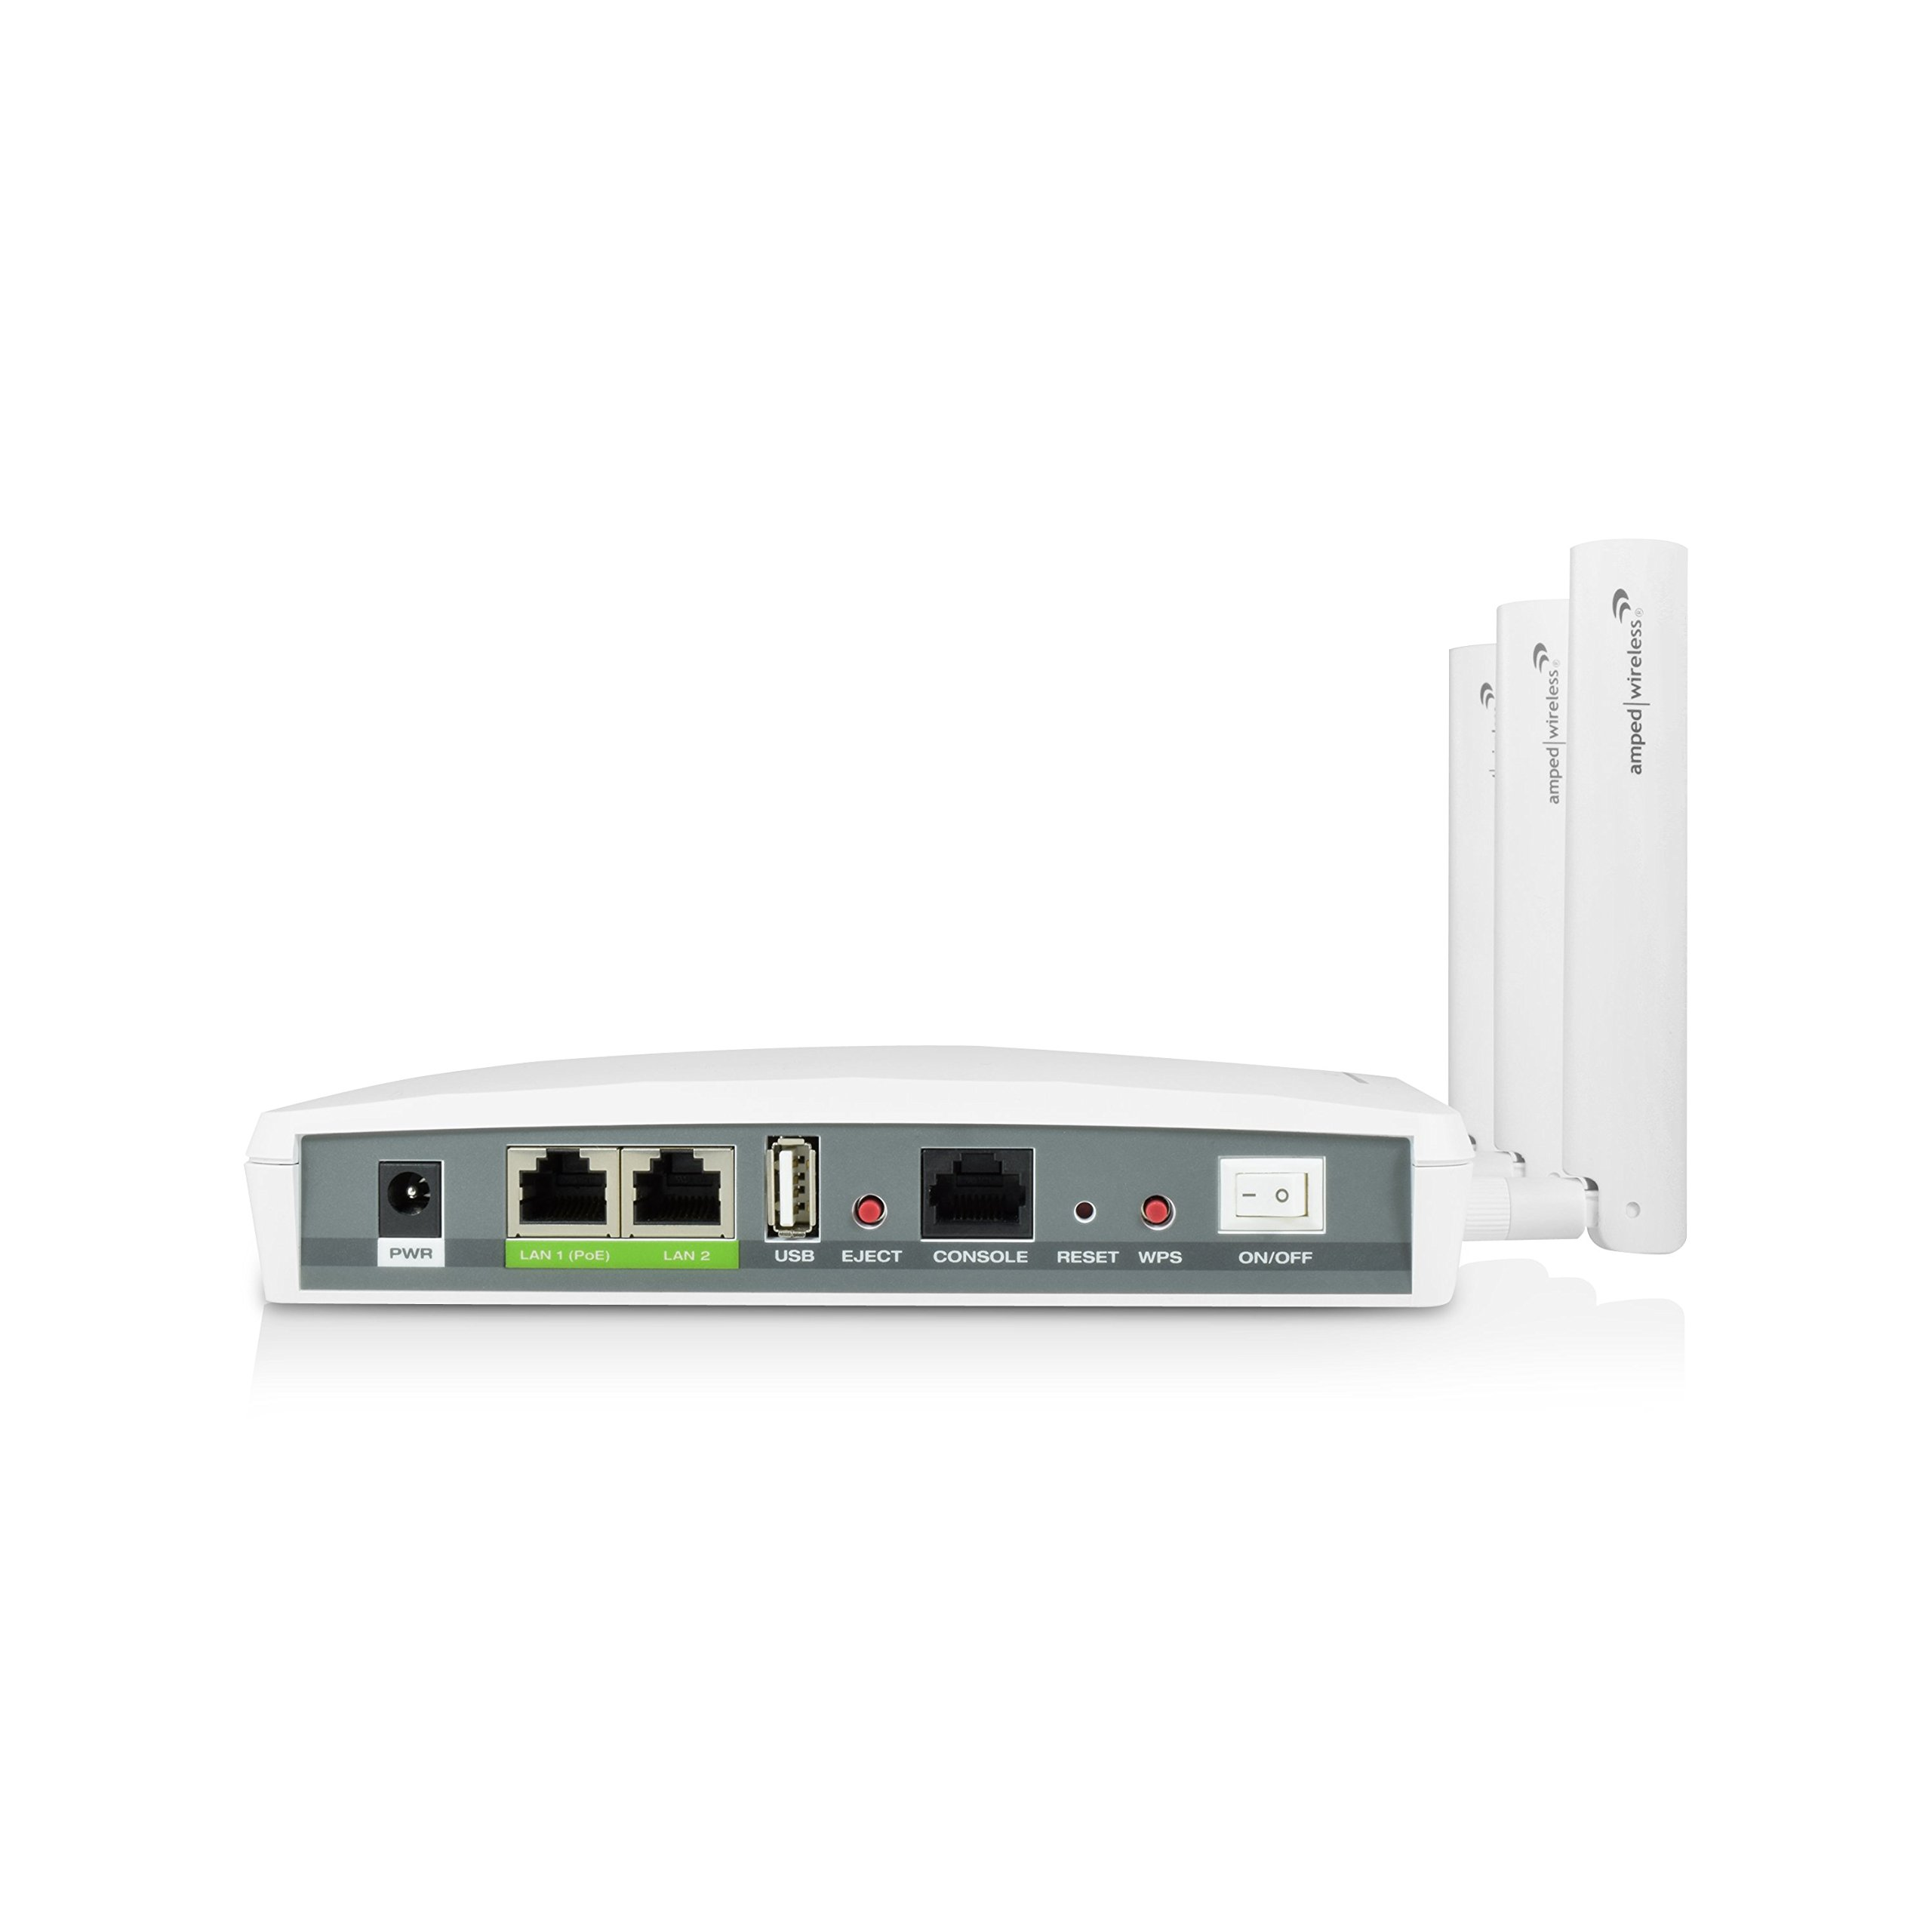 Amped Wireless ProSeries High Power AC1750 Wi-Fi Range Extender / Bridge (REB175P) by Amped (Image #4)